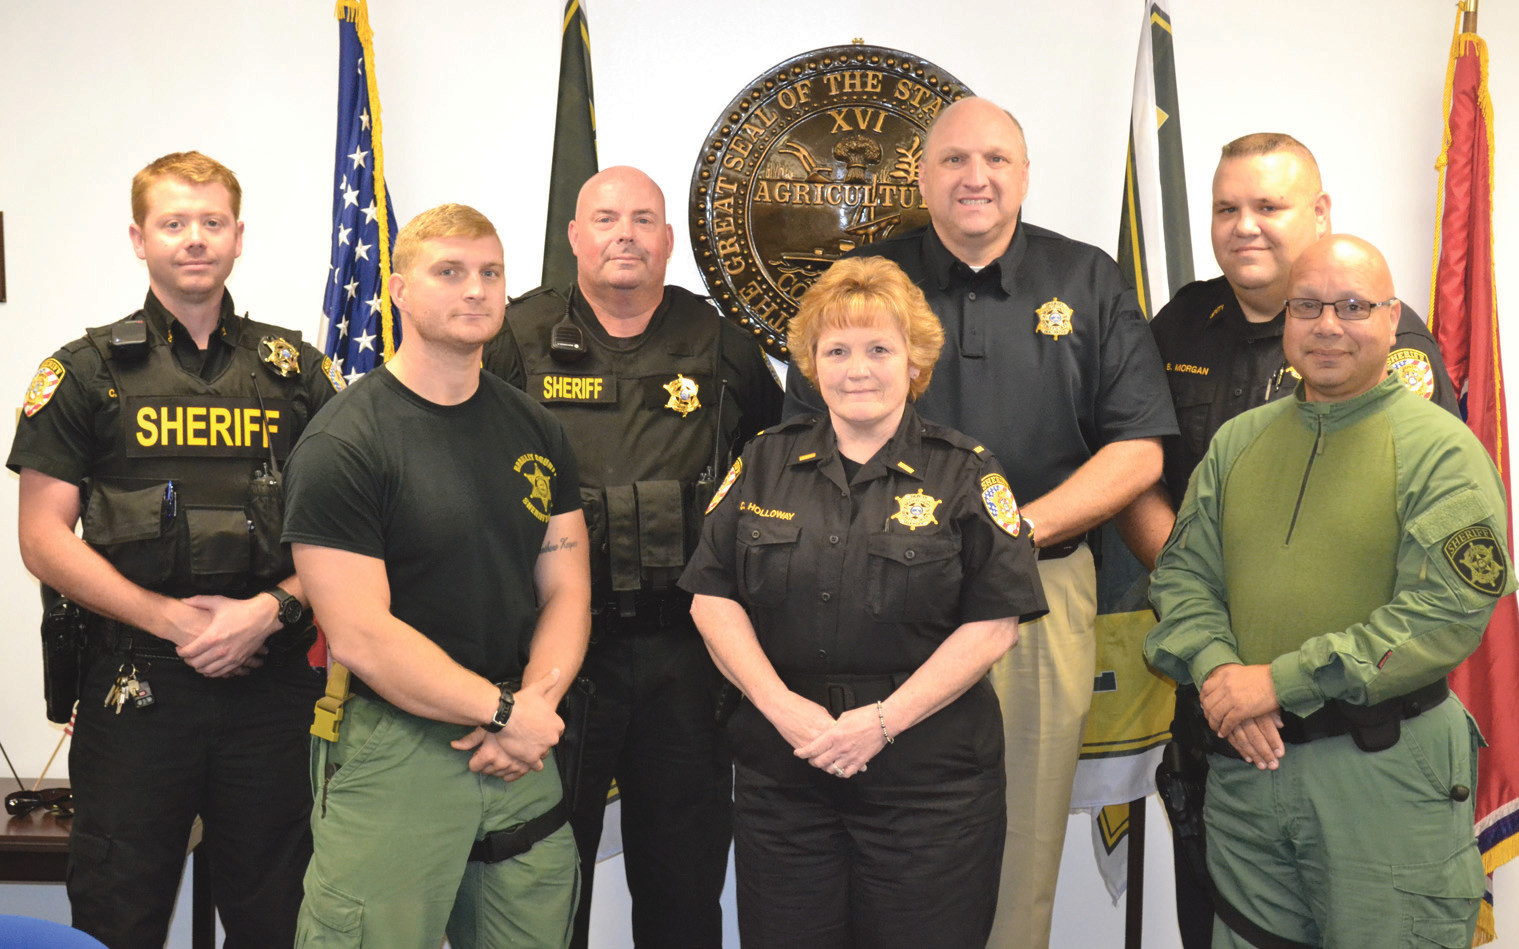 A GRANT from the Tennessee Highway Safety Office will be used at the Bradley County Sheriff's Office by the Public Service unit. Members of the PSU are, from left, front row: Deputy Brandon Coffel, Public Safety Lt. Cheryl Holloway, Public Safety Unit Sgt. Mario Santos; back row, Deputy Corey Loftis, Deputy Andy Smith, Sheriff Eric Watson, and Deputy Bruce Morgan.